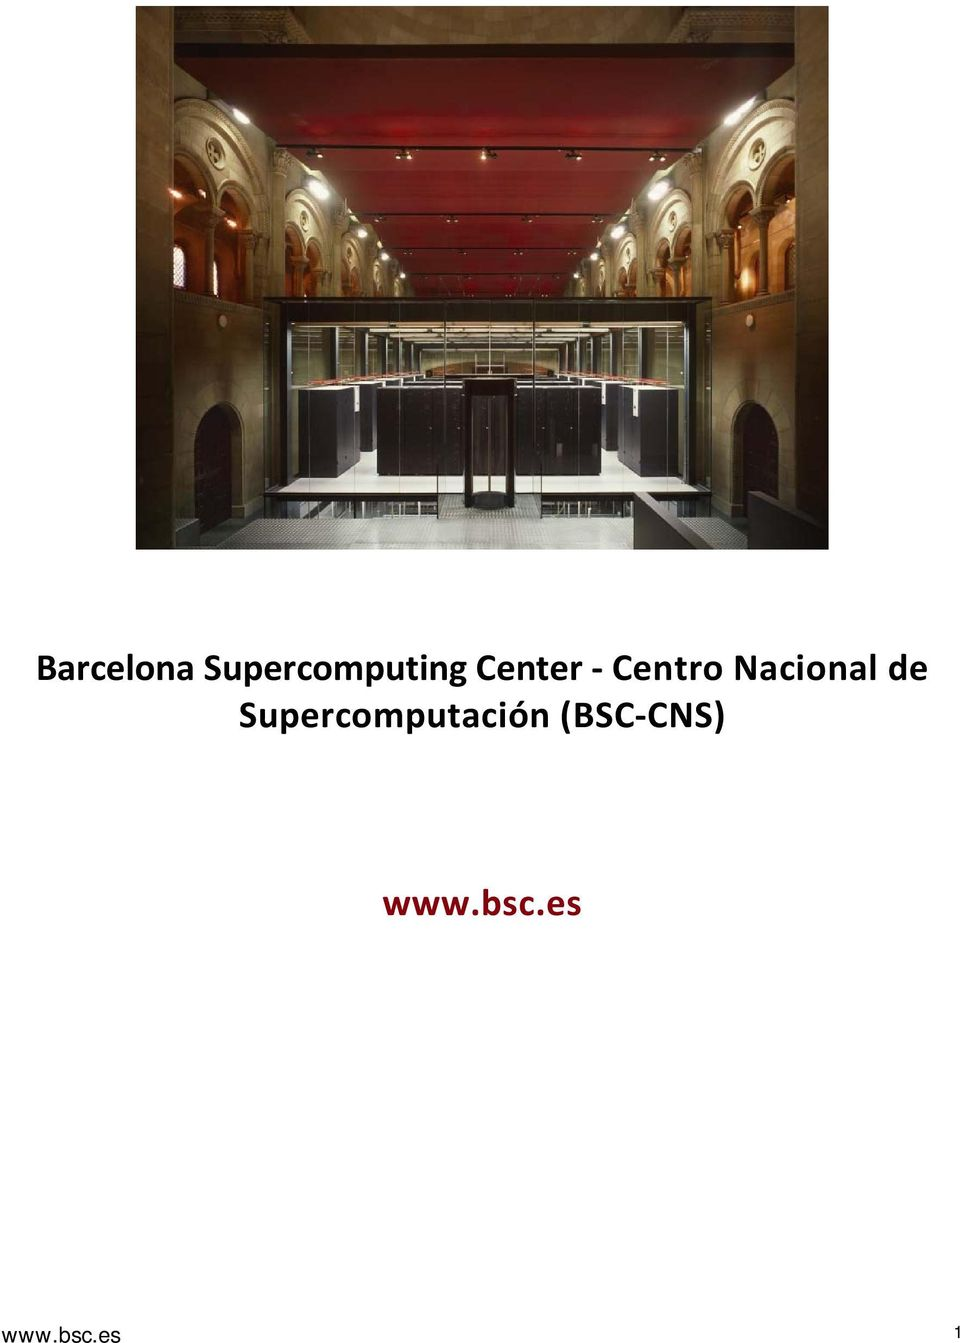 Supercomputación (BSC